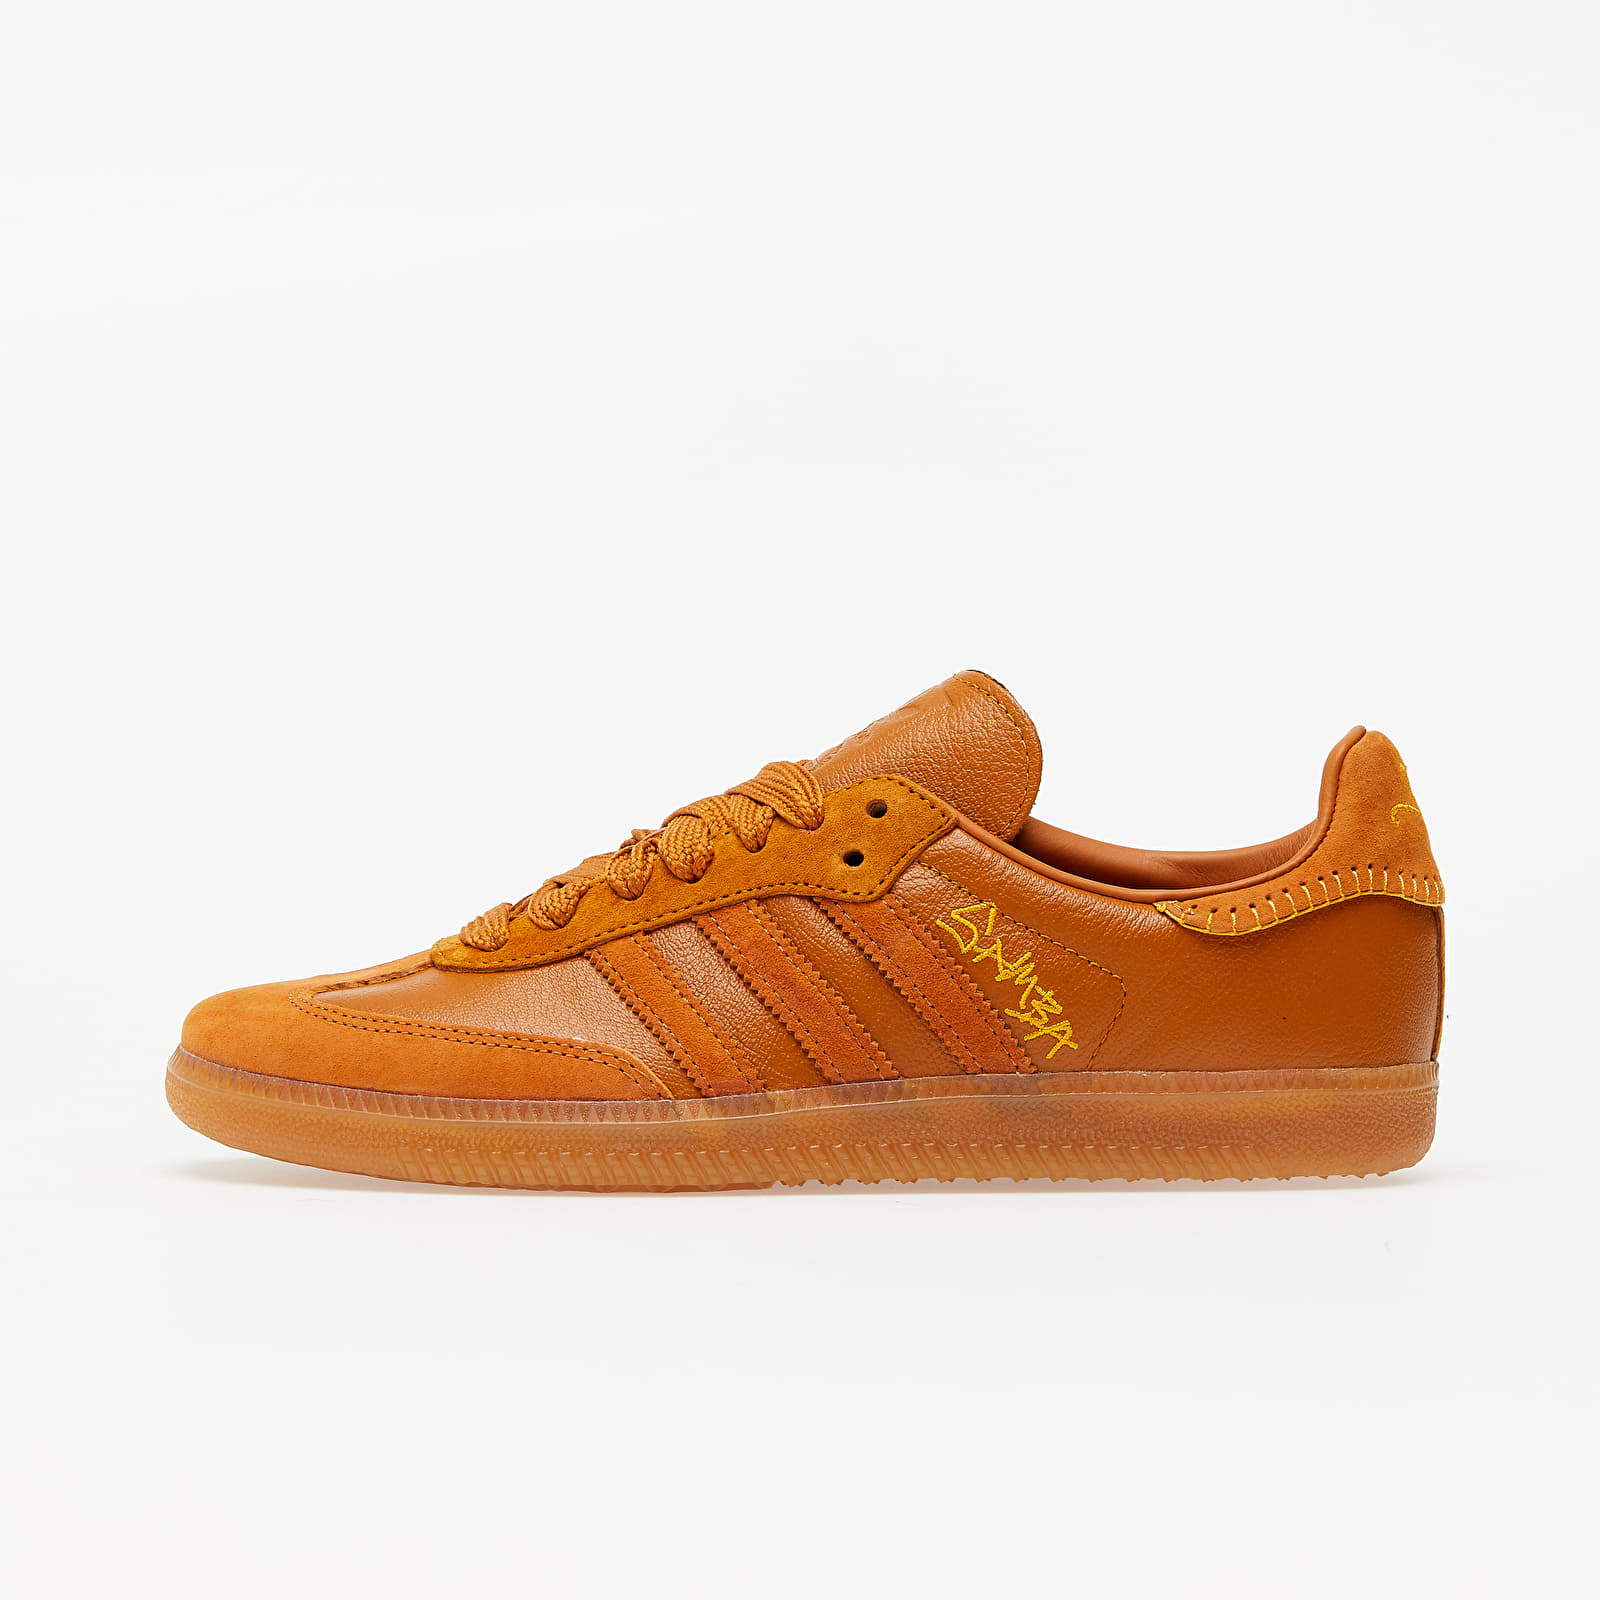 Men's shoes adidas x Jonah Hill Samba Craft Ochre/ Tech Copper/ Ecru Tint